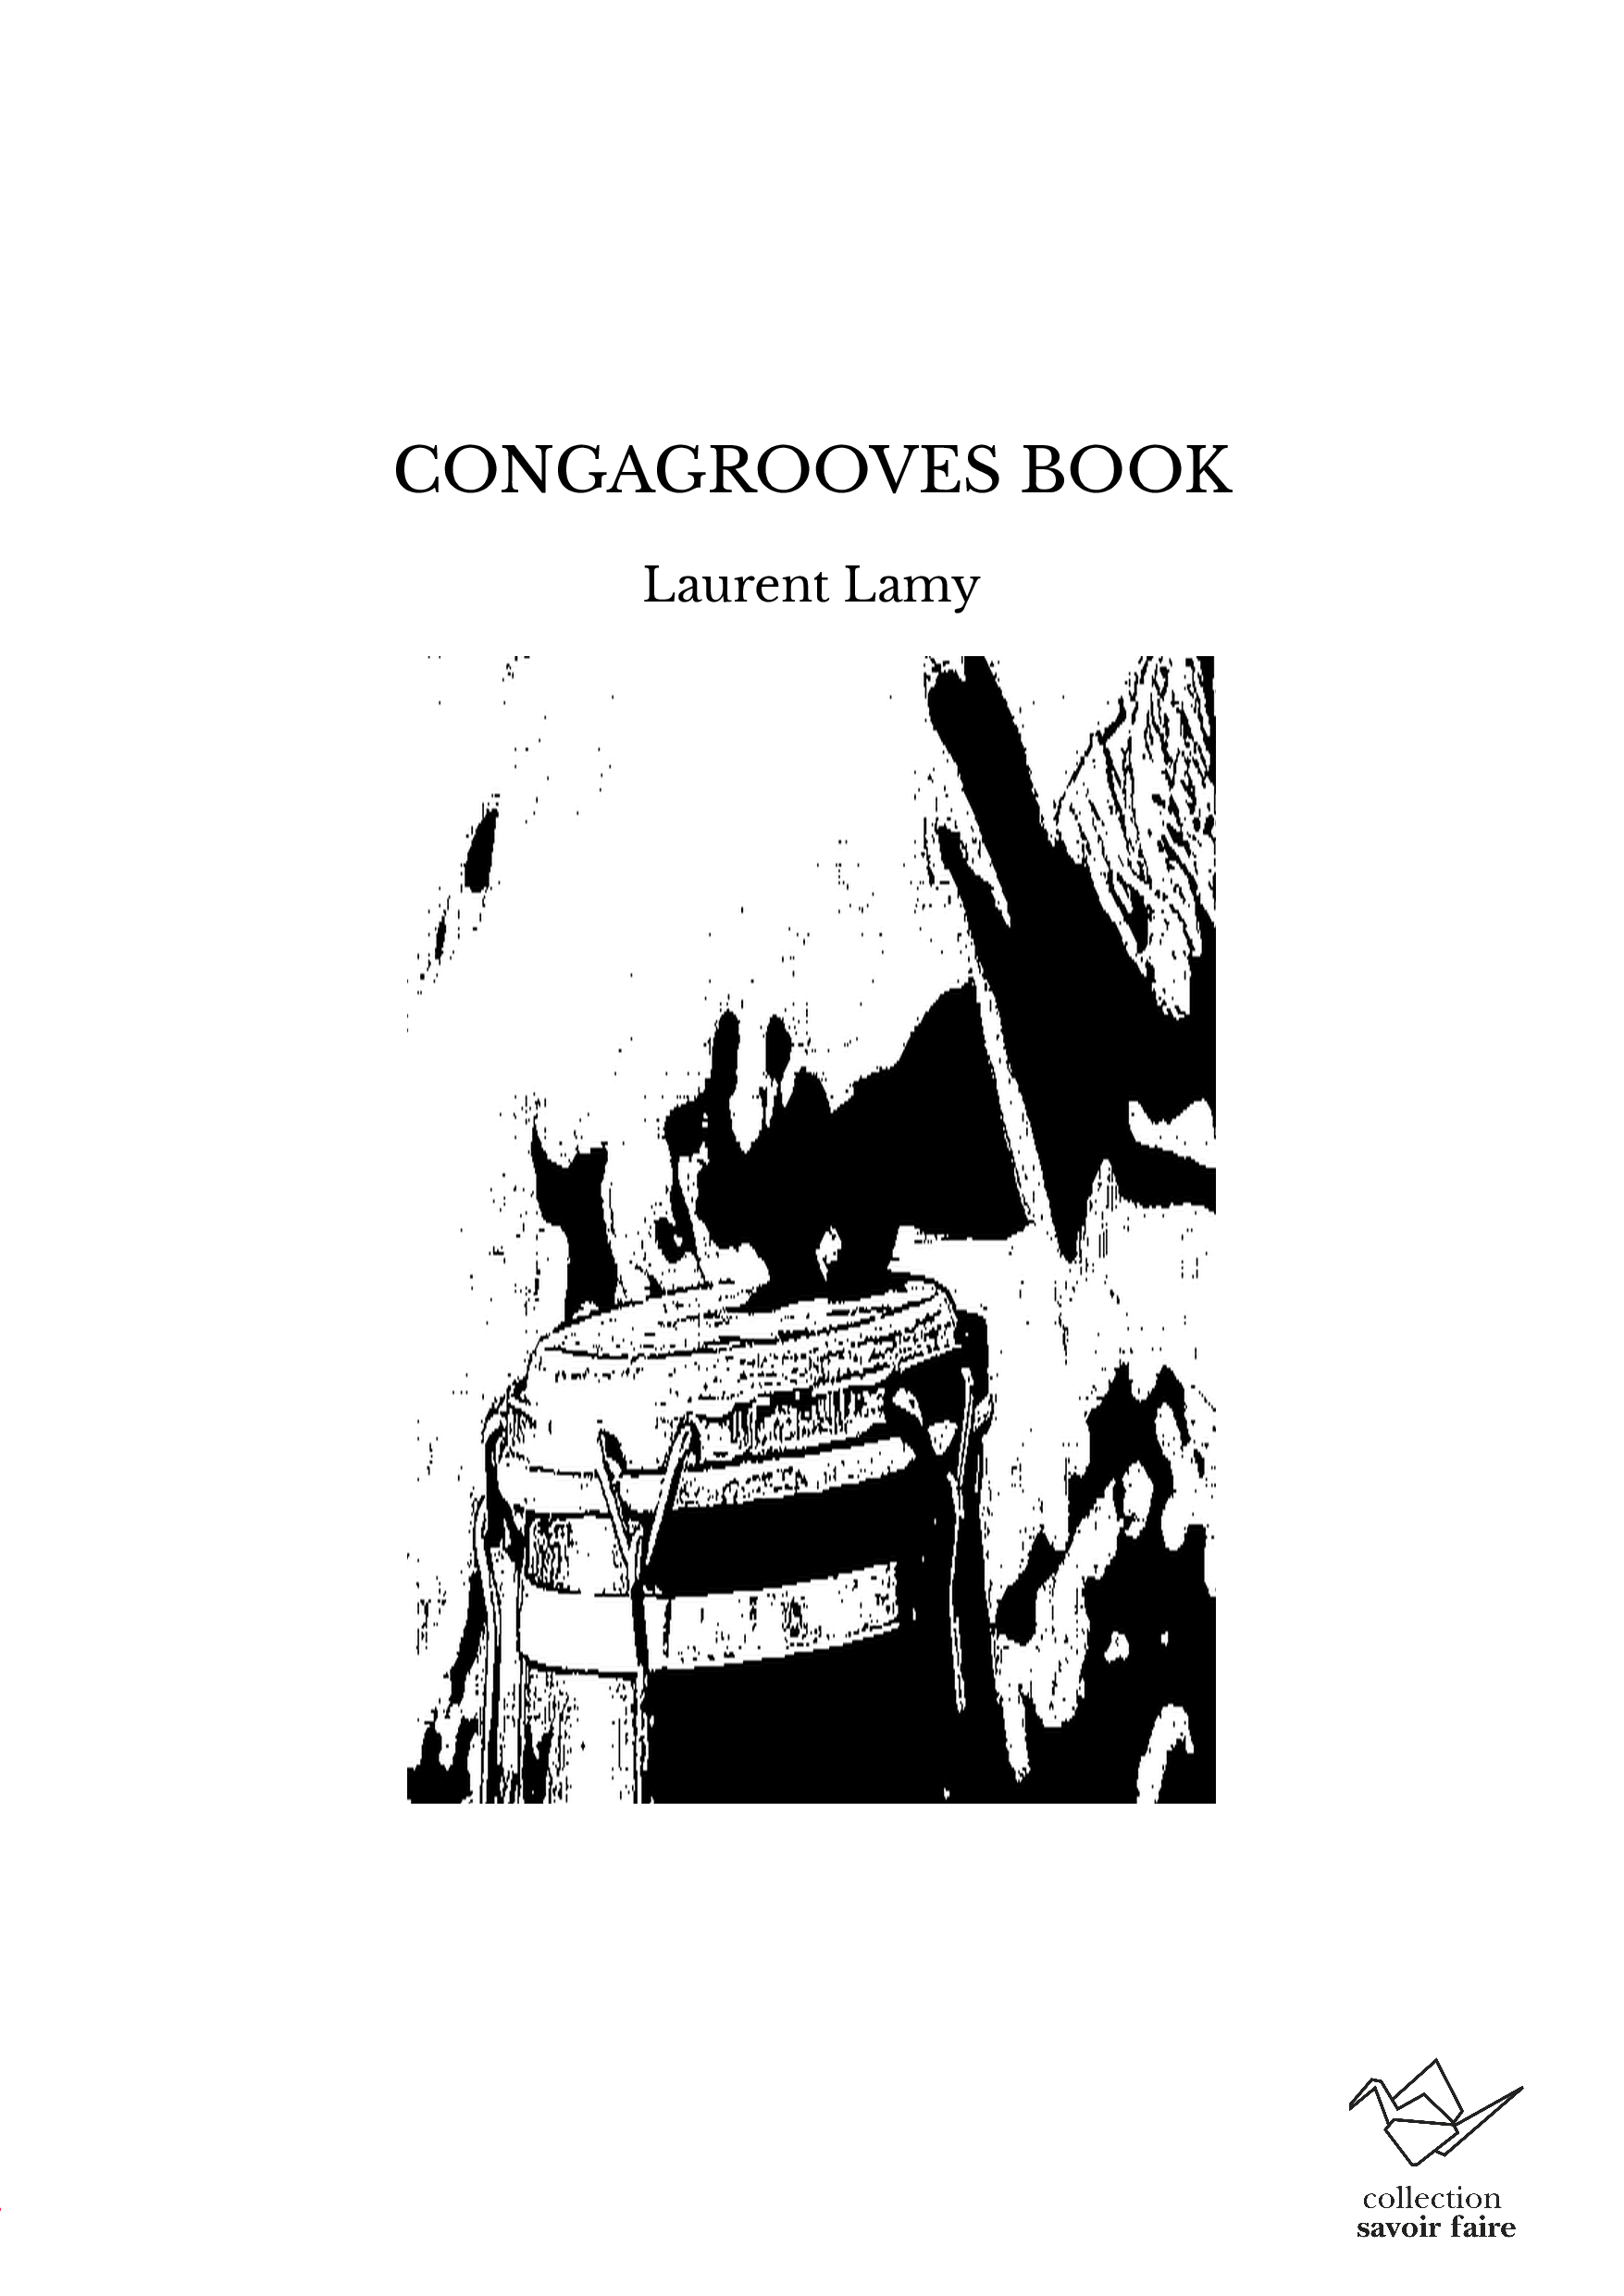 CONGAGROOVES BOOK